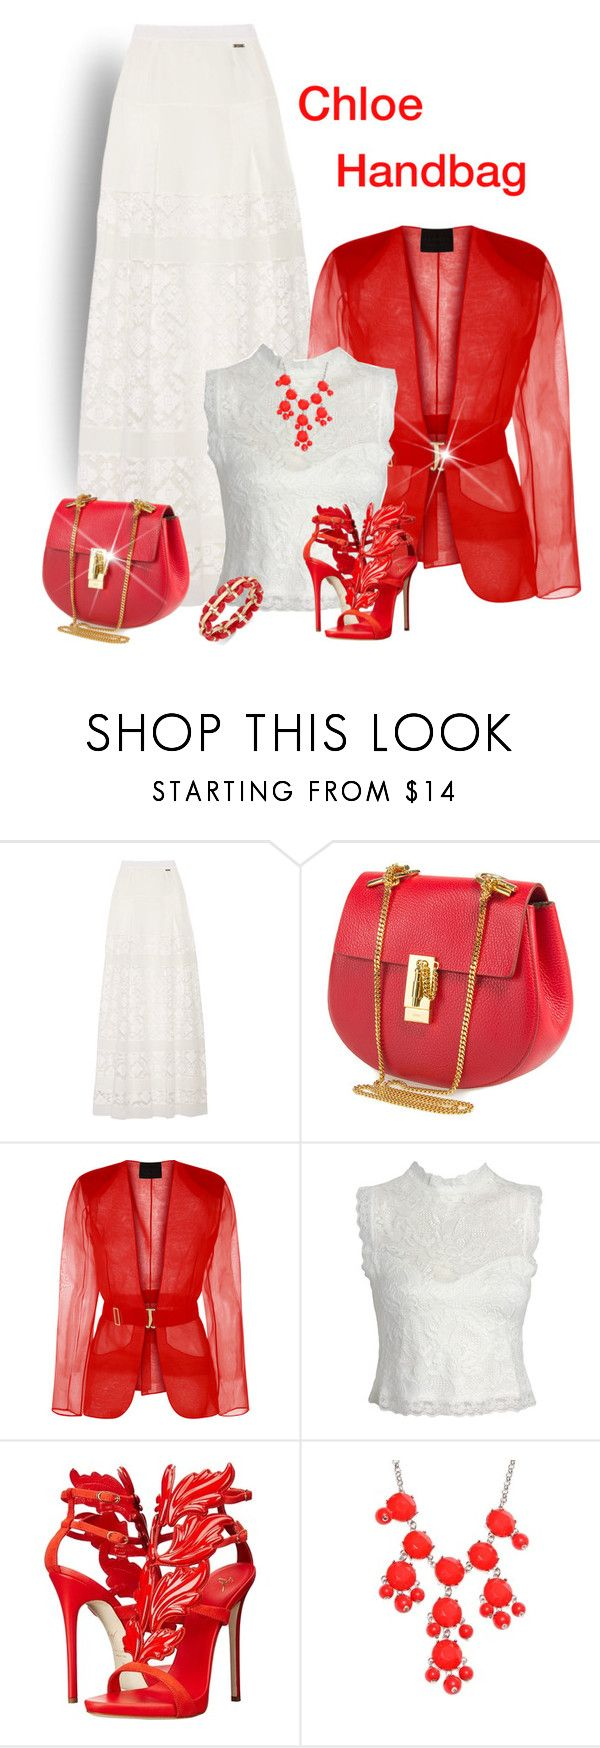 """""""Chloe Handbag"""" by lorrainekeenan ❤ liked on Polyvore featuring Just Cavalli, Chloé, Sans Souci, Giuseppe Zanotti, New Directions and Charter Club"""